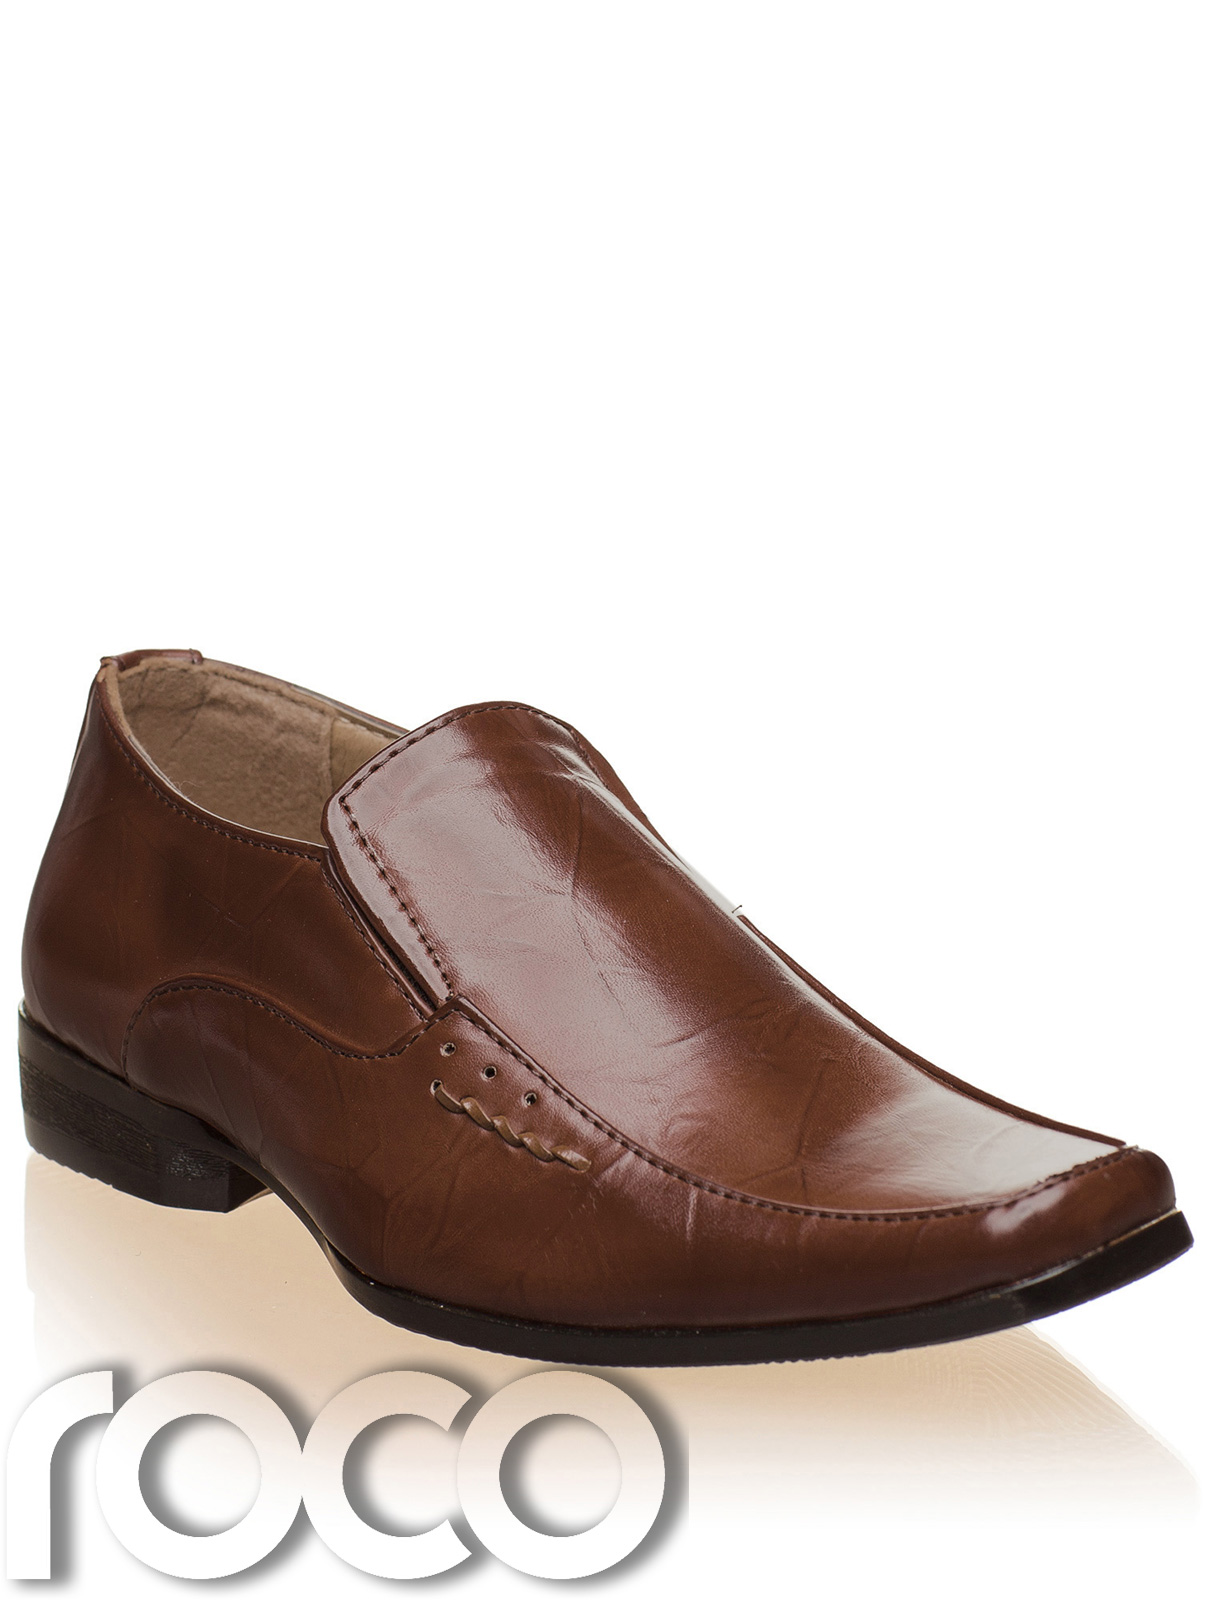 boys brown shoes boys wedding shoes slip on shoes prom